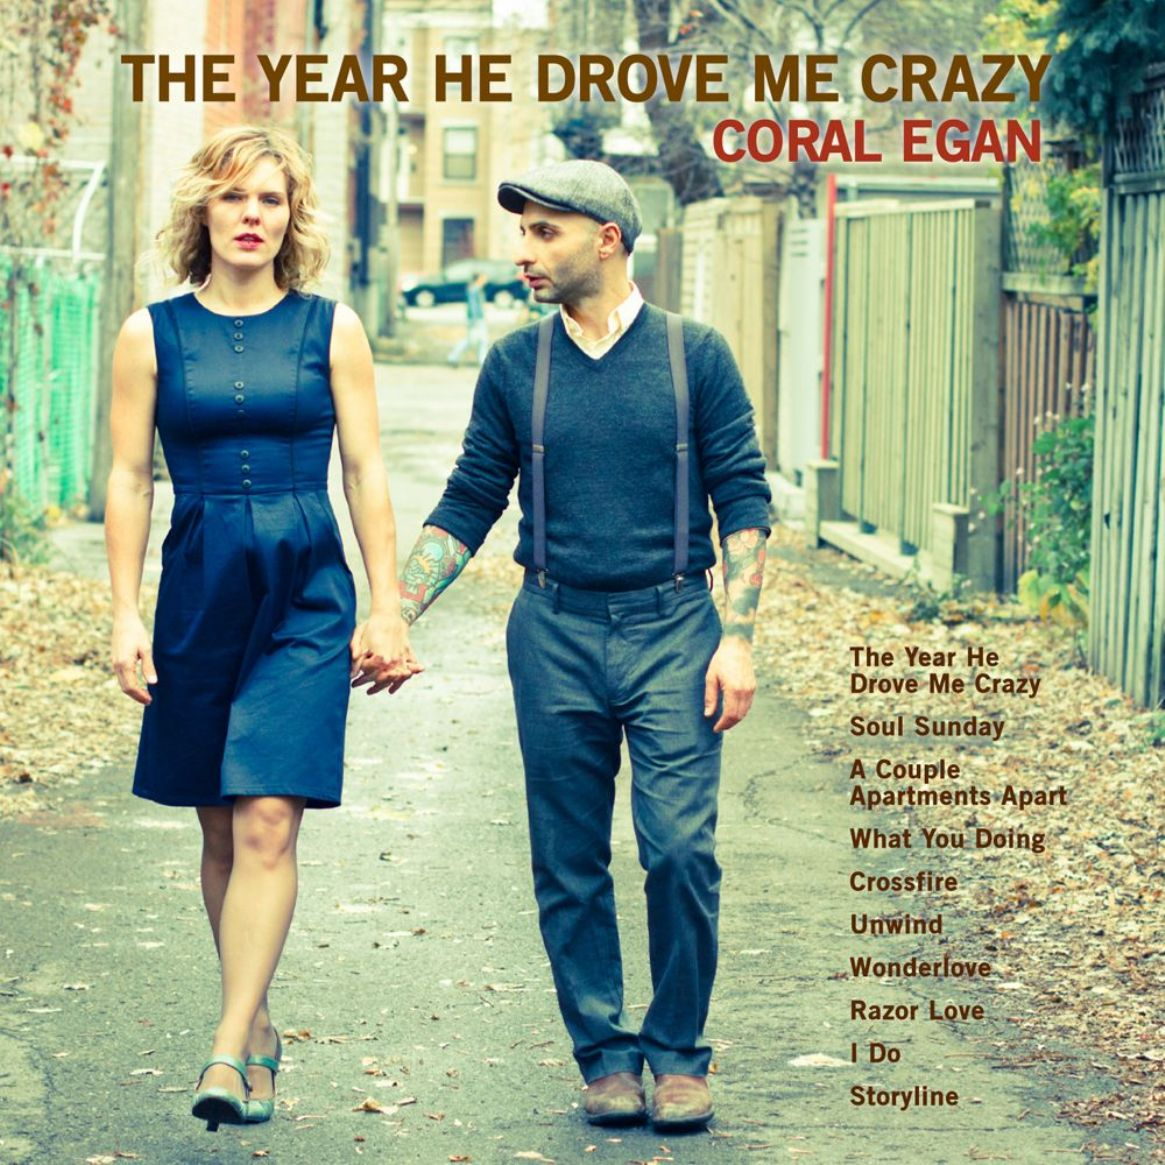 Egan, Coral : The Year He Drove Me Crazy  CD